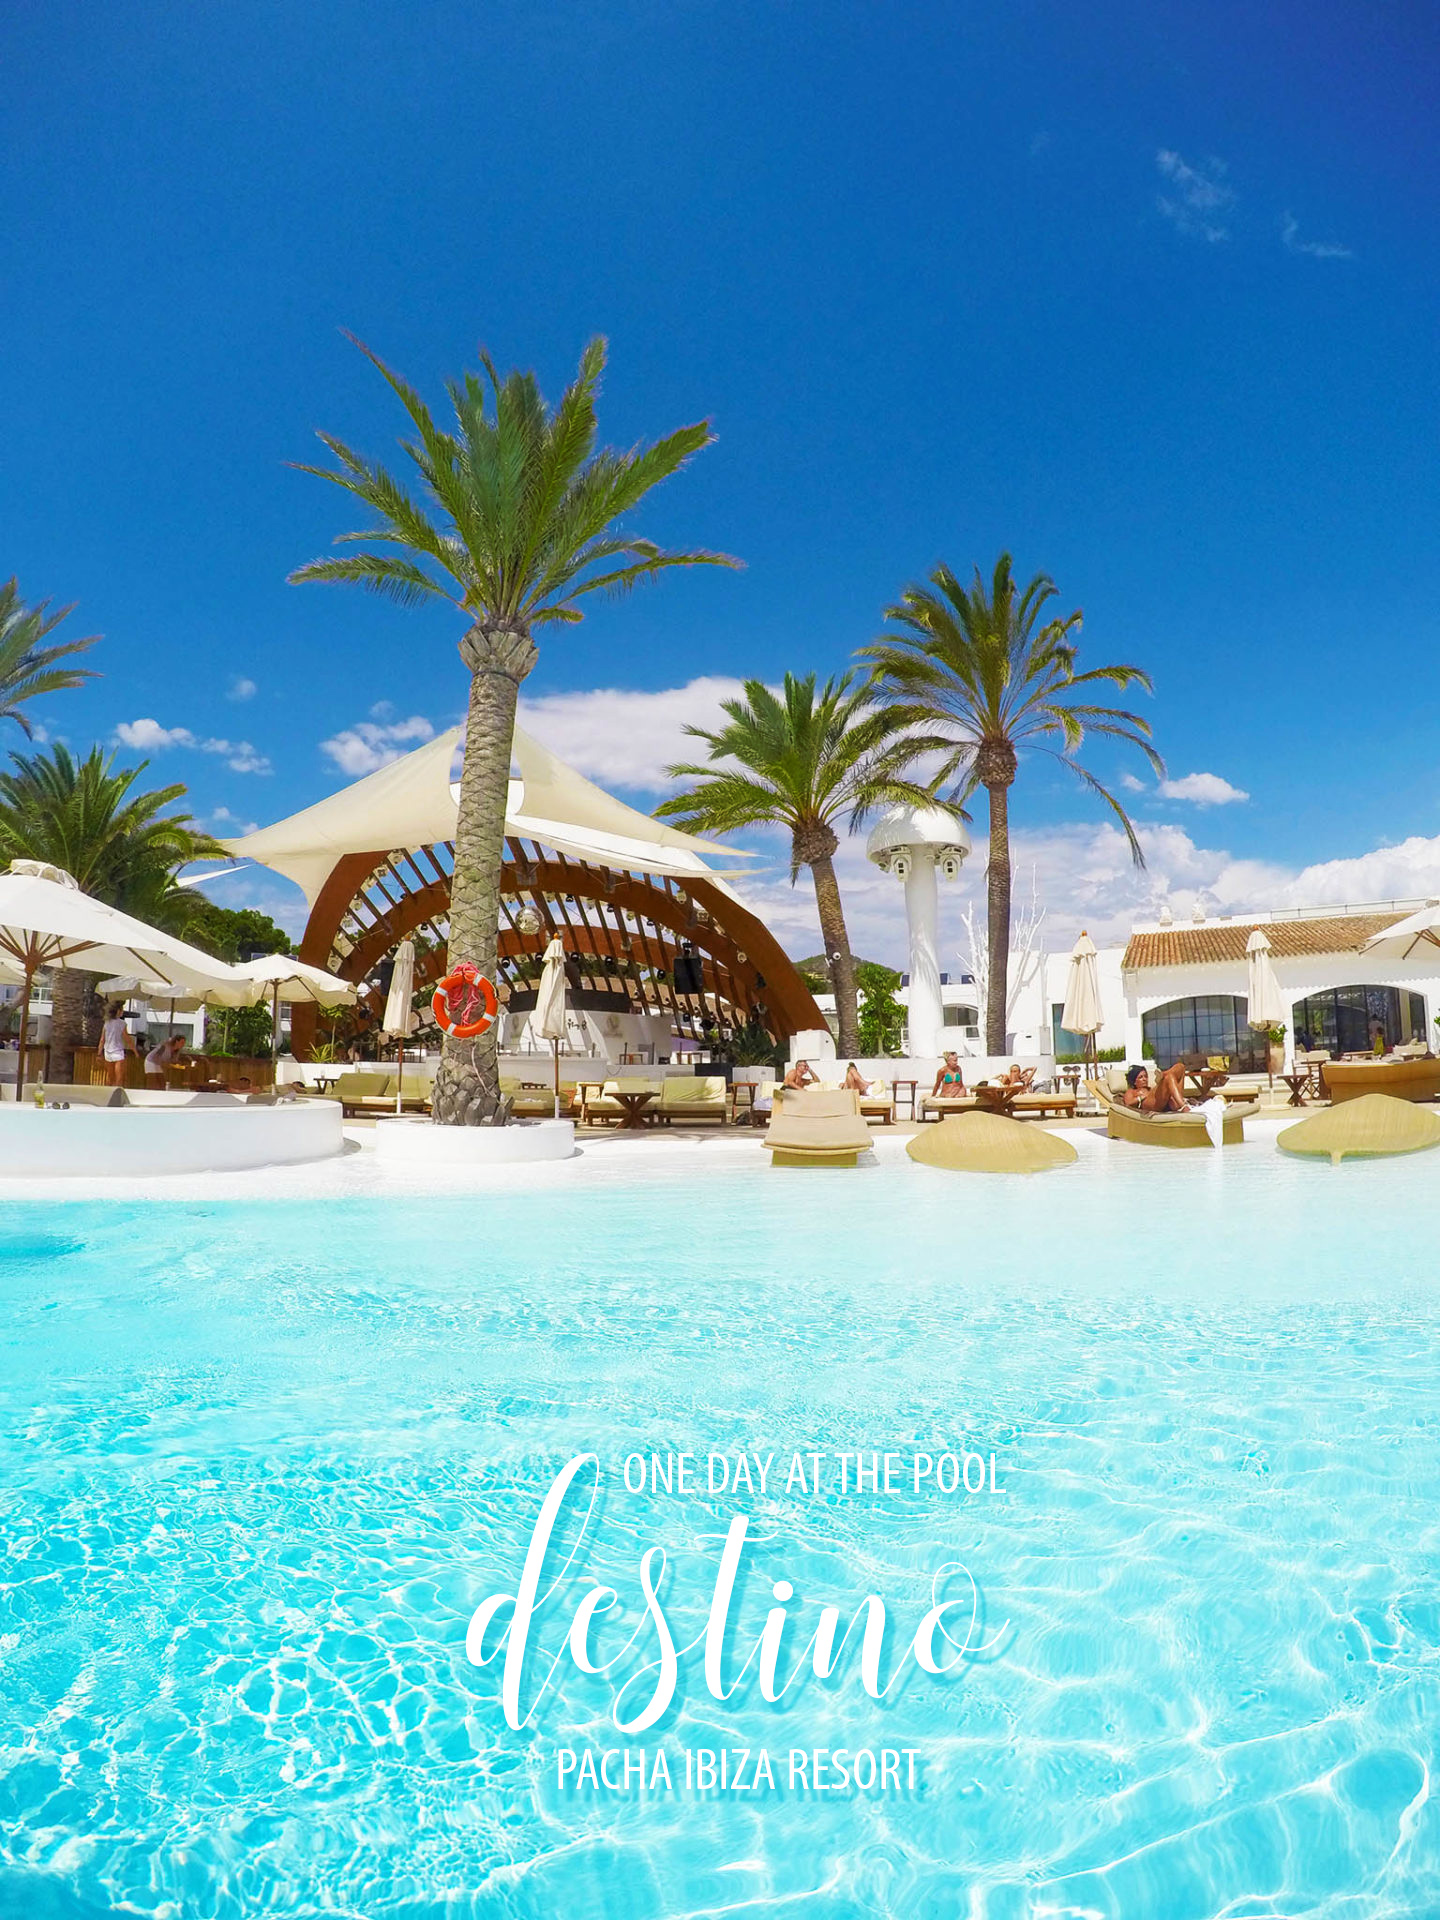 Destino Pacha Ibiza Resort Pinterest